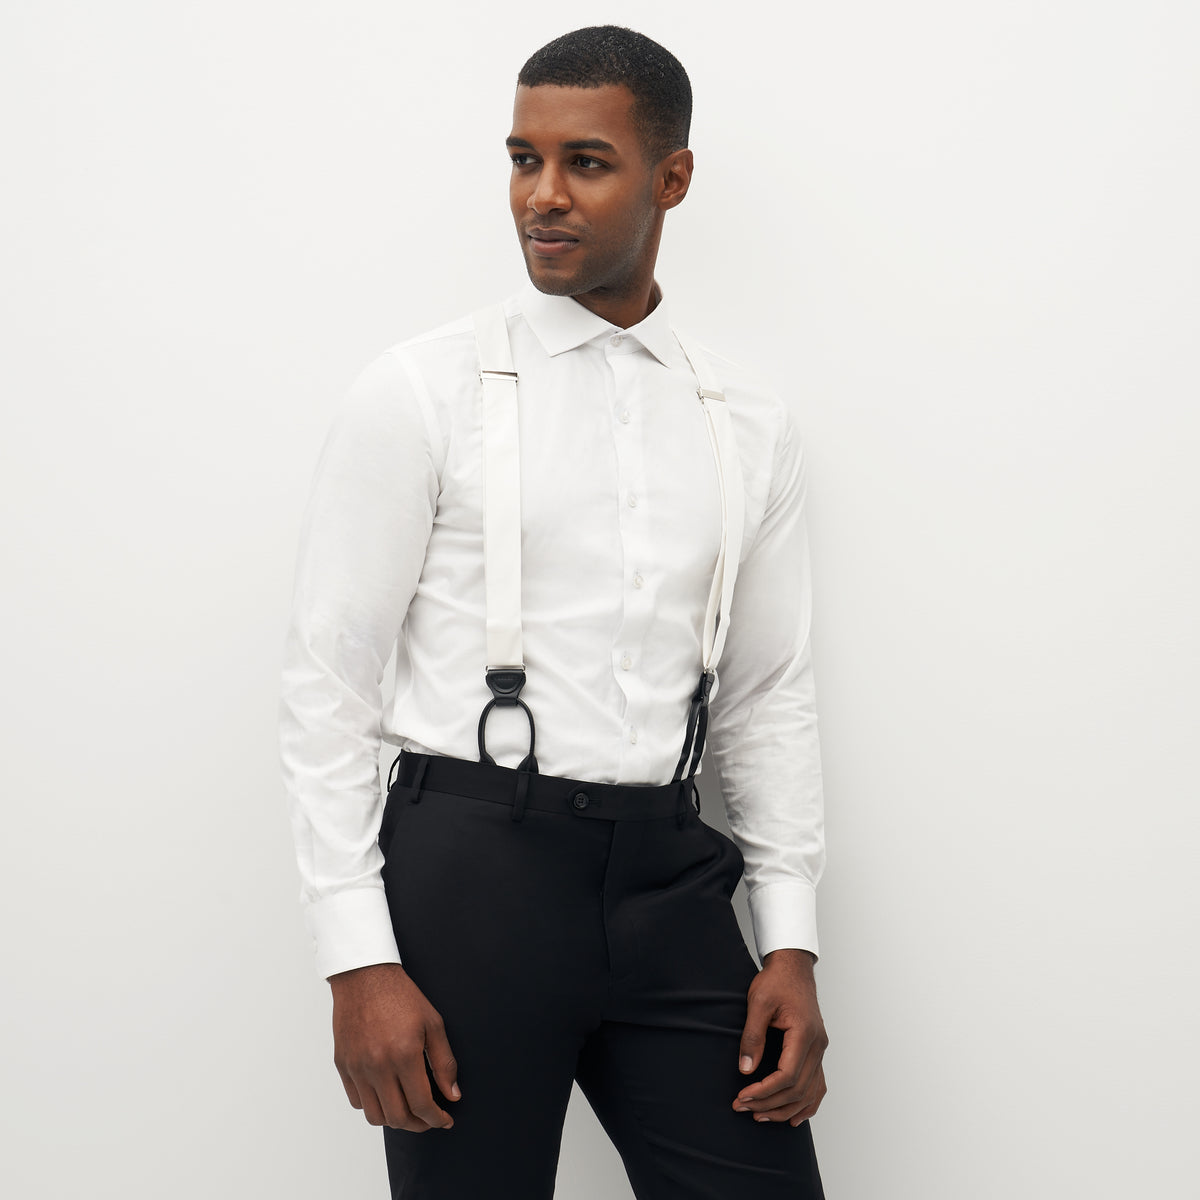 Grosgrain Solid White Suspenders